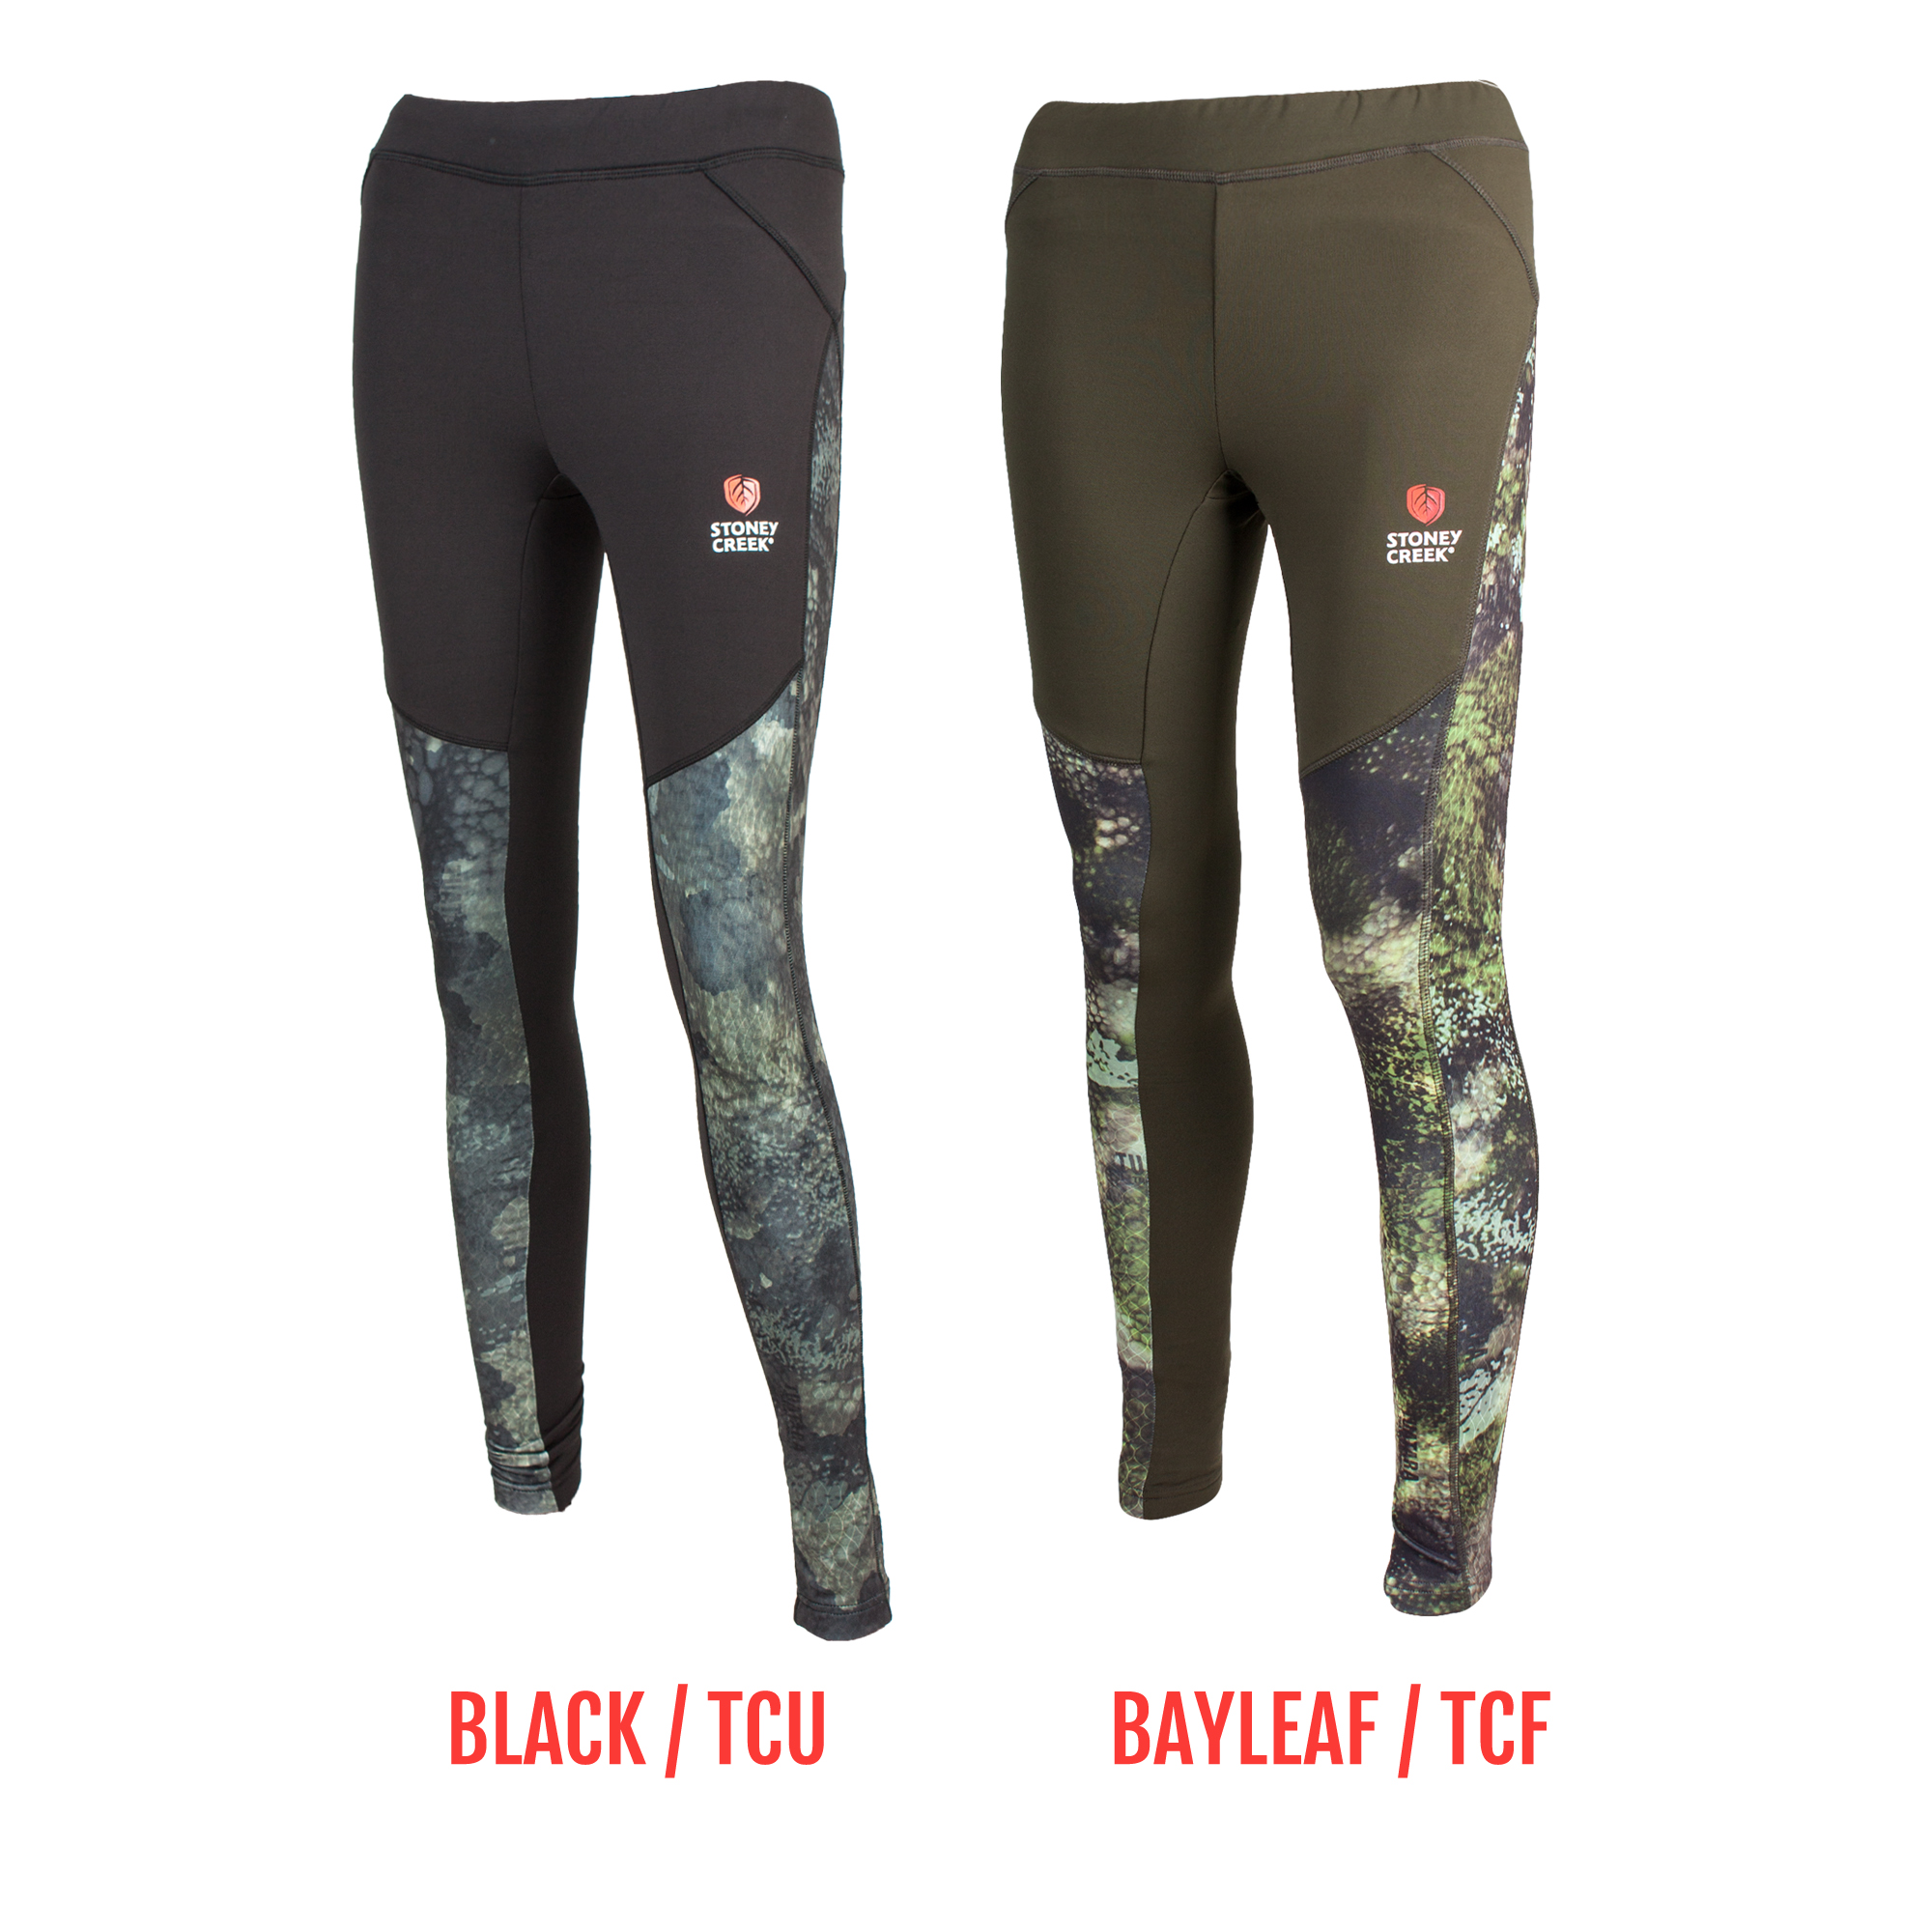 0966d364d8e61 Stoney Creek Women's Active Tights - Tuatara | Wild Outdoorsman NZ